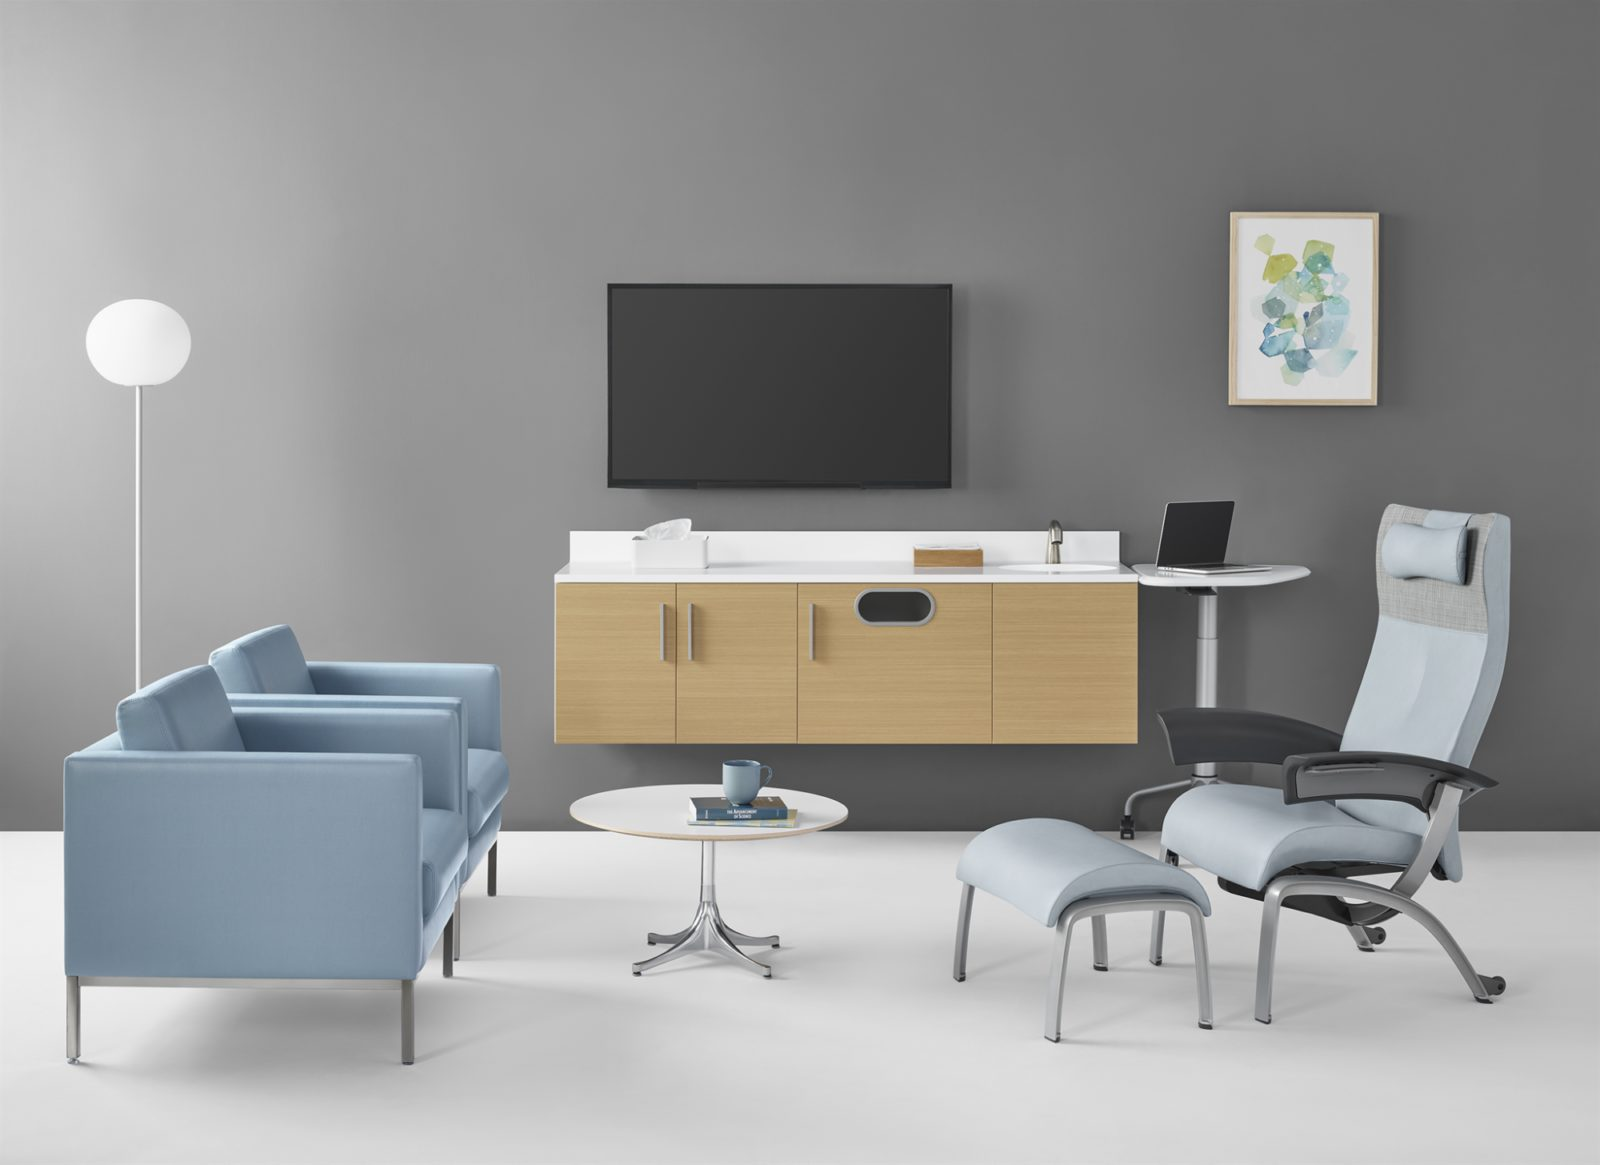 clinical casework solution for consultation room